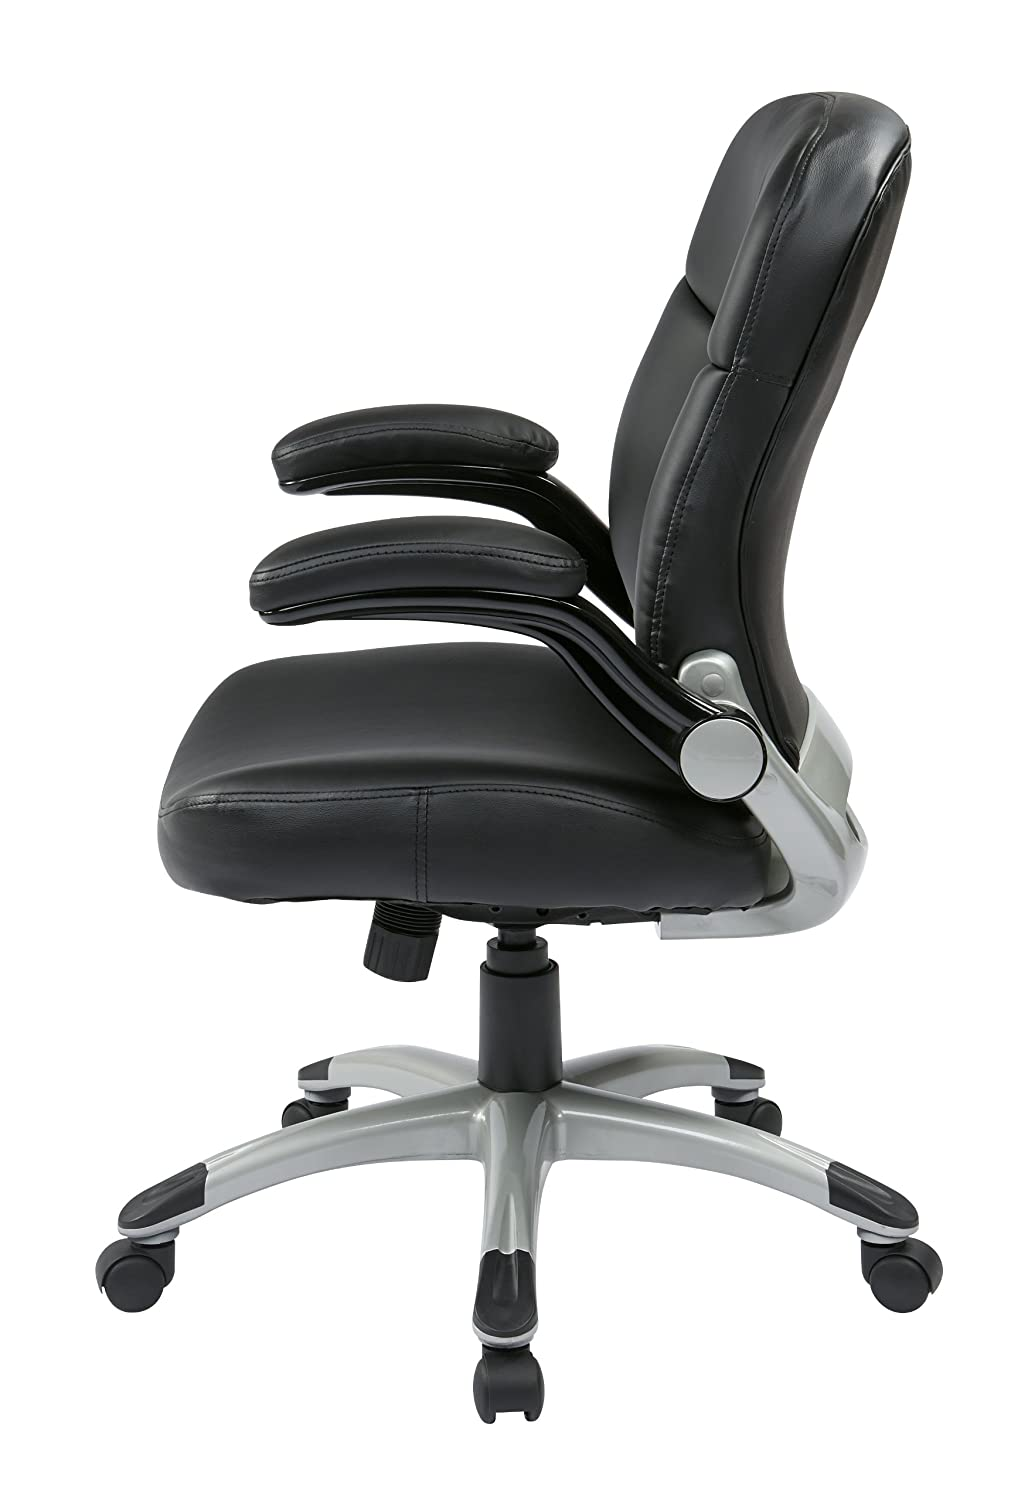 office star worksmart chair review. amazon.com: office star mid back bonded leather executives chair with padded flip arms and titanium coated accents, black: kitchen \u0026 dining worksmart review